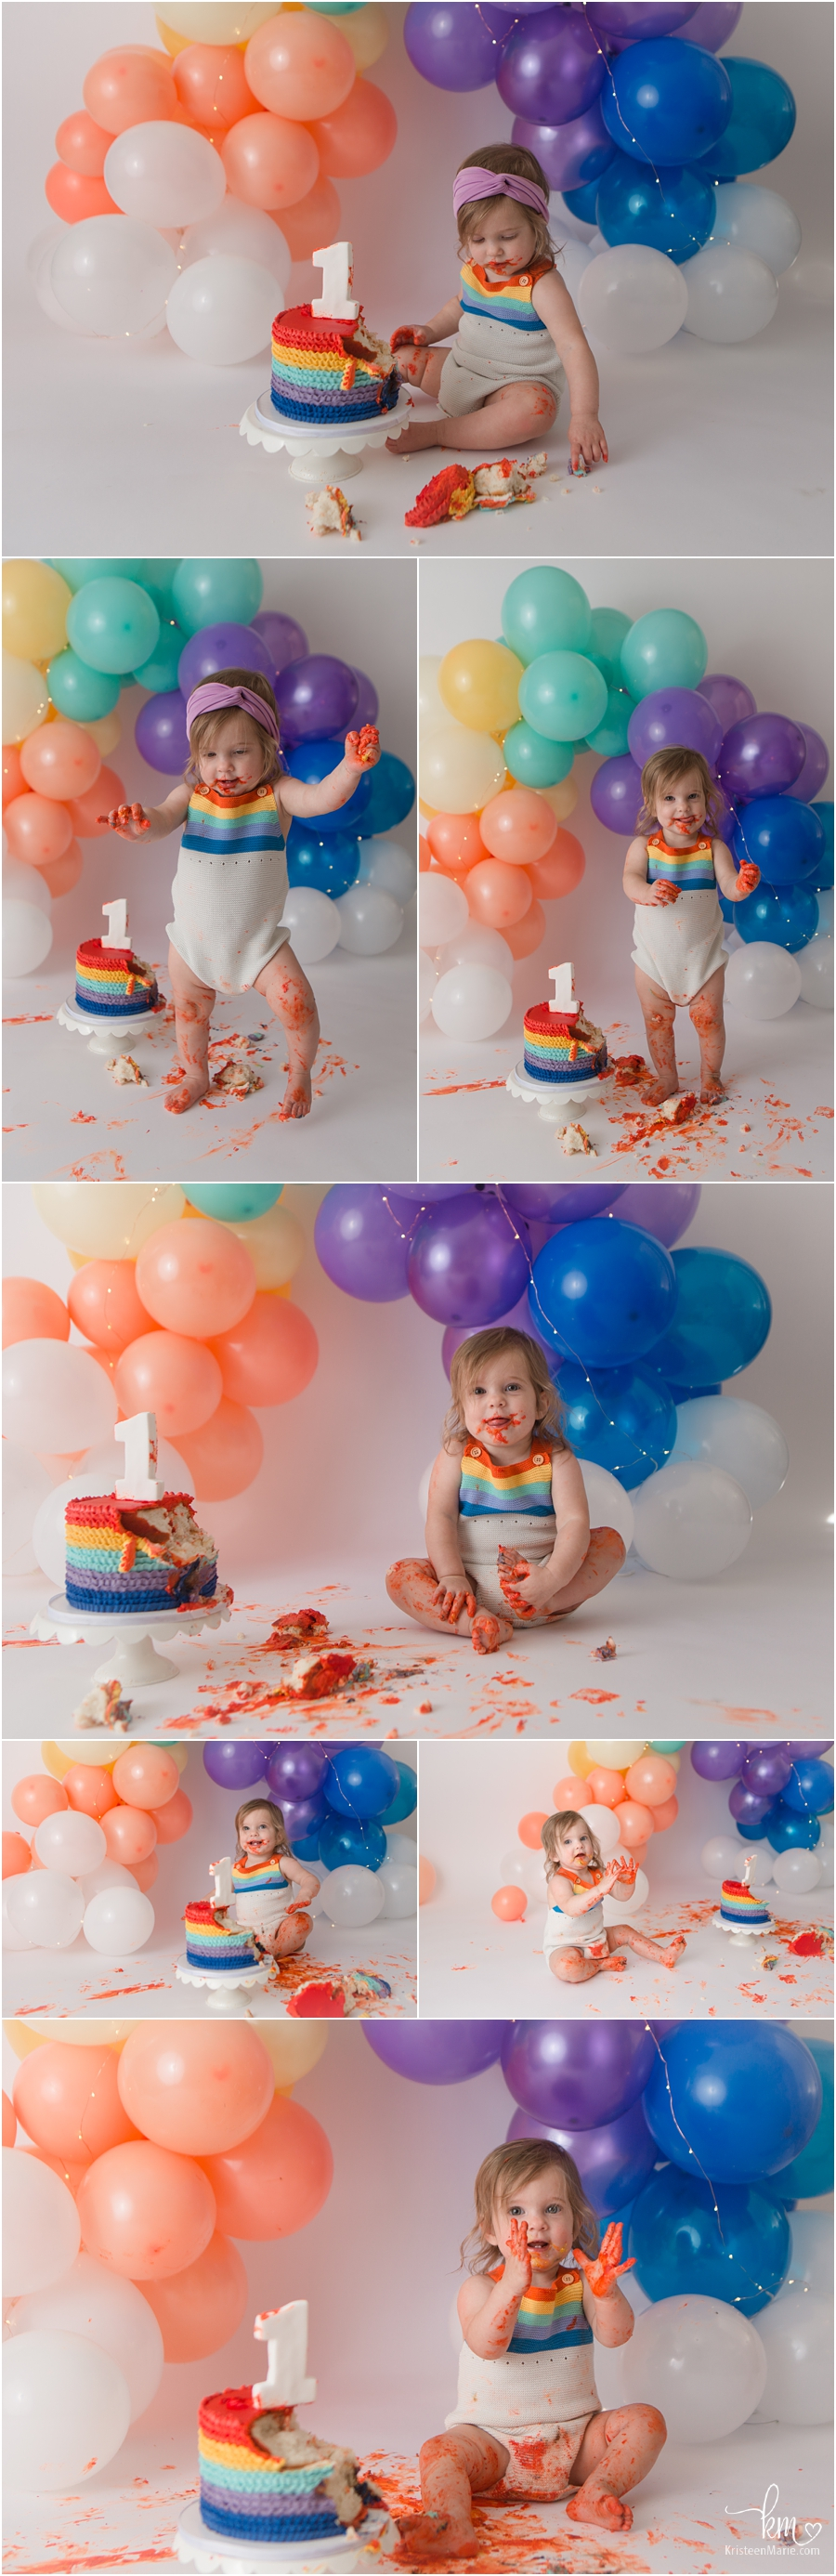 balloon rainbow arch used for 1st birthday cake smash